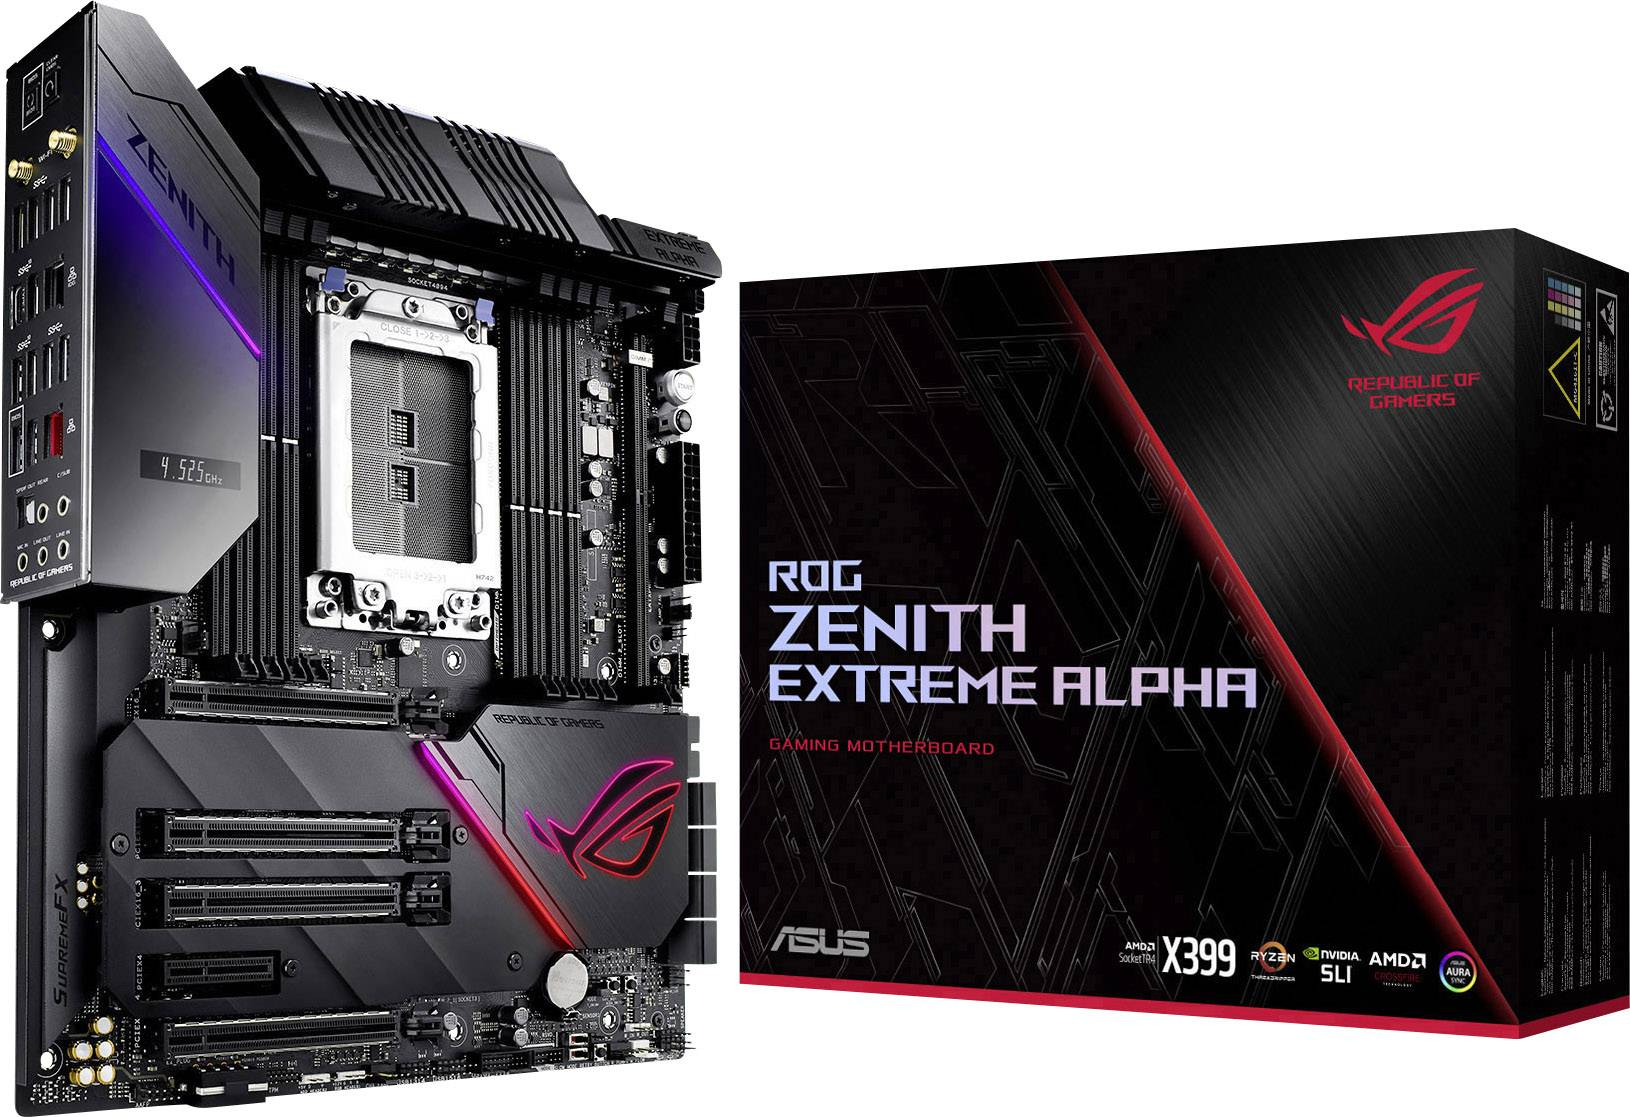 Asus Rog Zenith Extreme Alpha Motherboard Pc Base Amd Tr4 Form Factor E Atx Motherboard Chipset Amd X399 Conrad Com